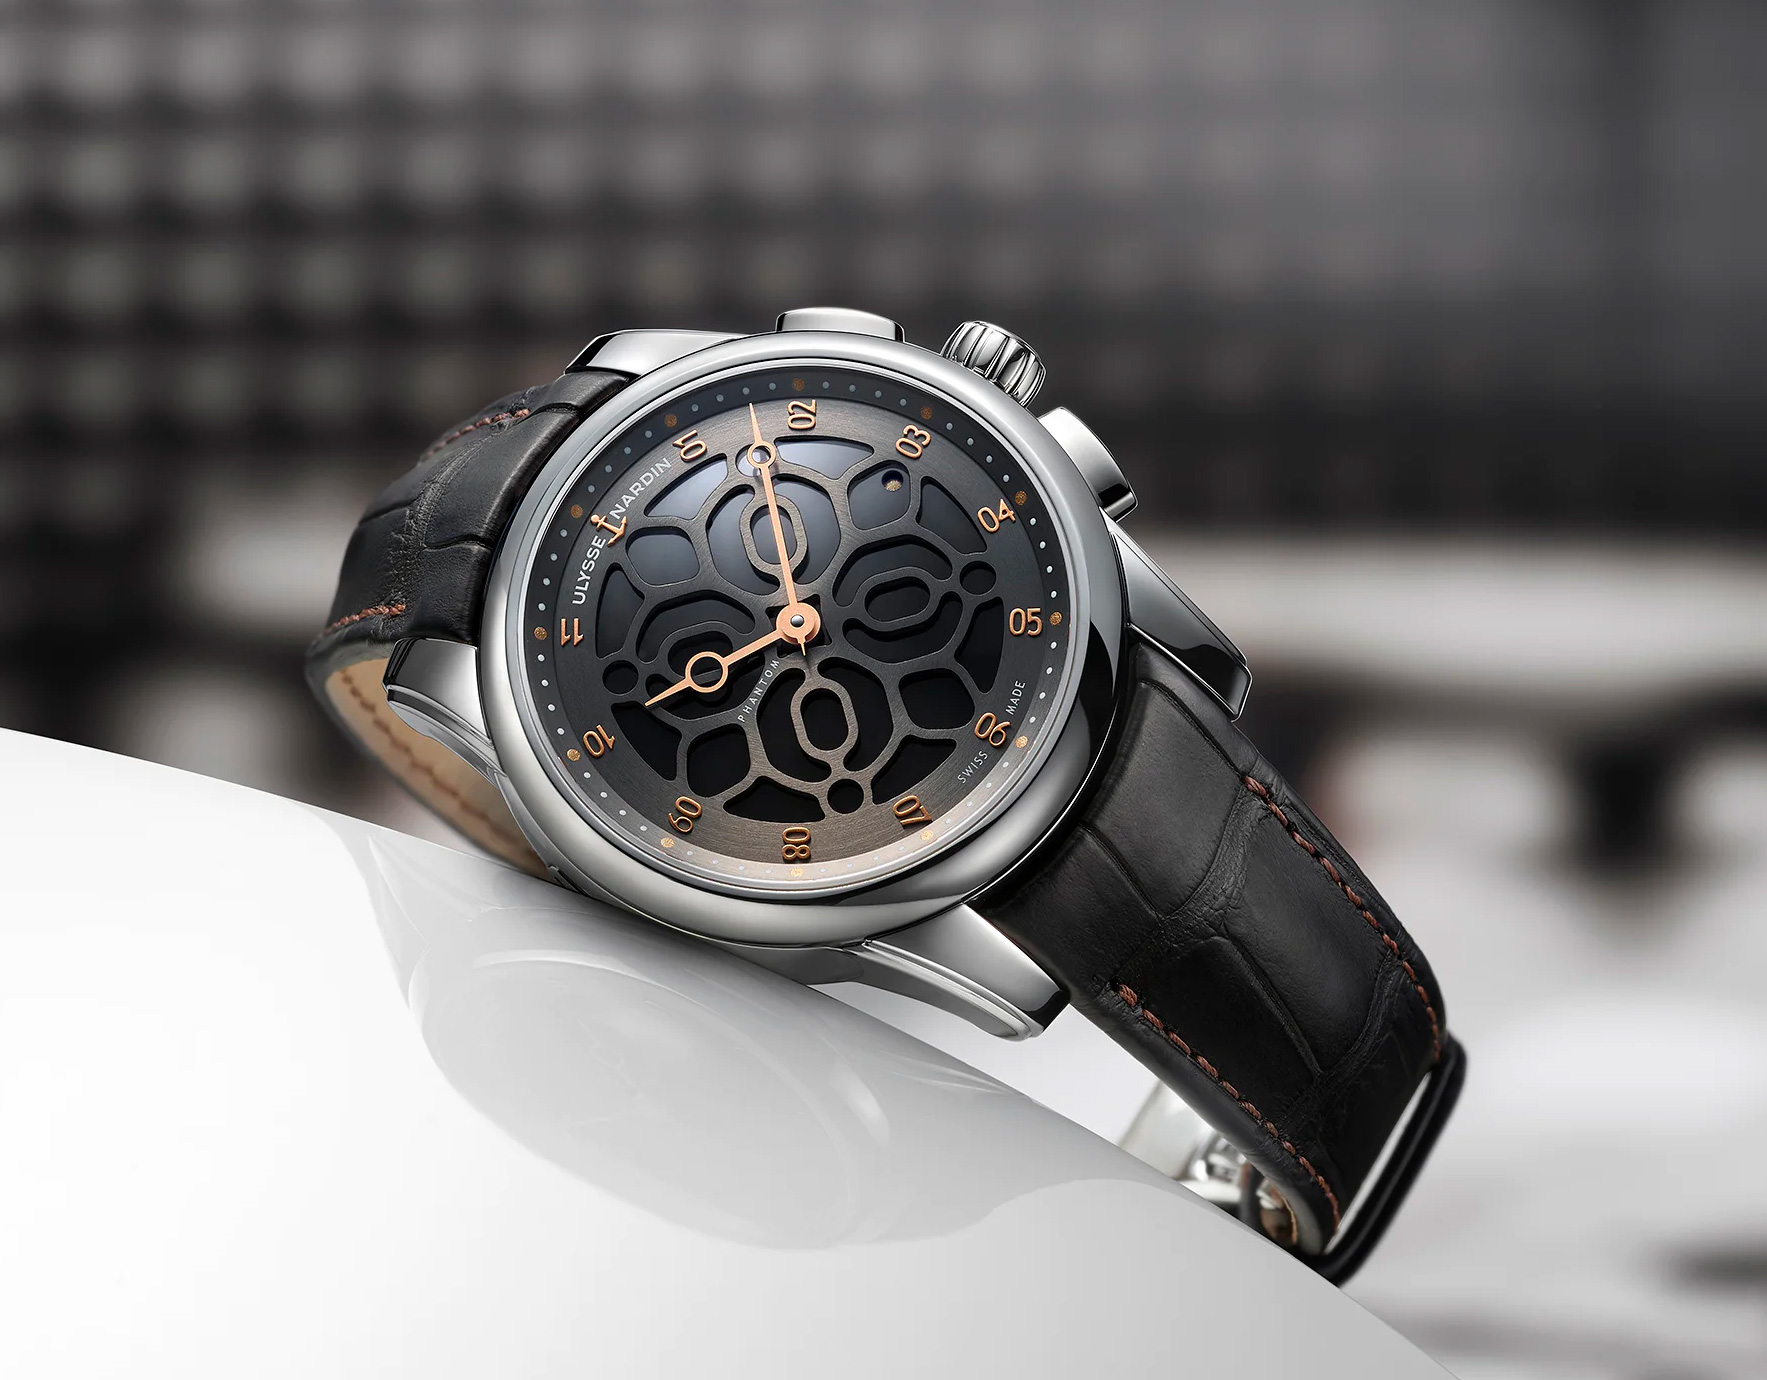 The Limited Edition Ulysse Nardin Hourstriker Phantom Sounds as Good as it Looks at werd.com